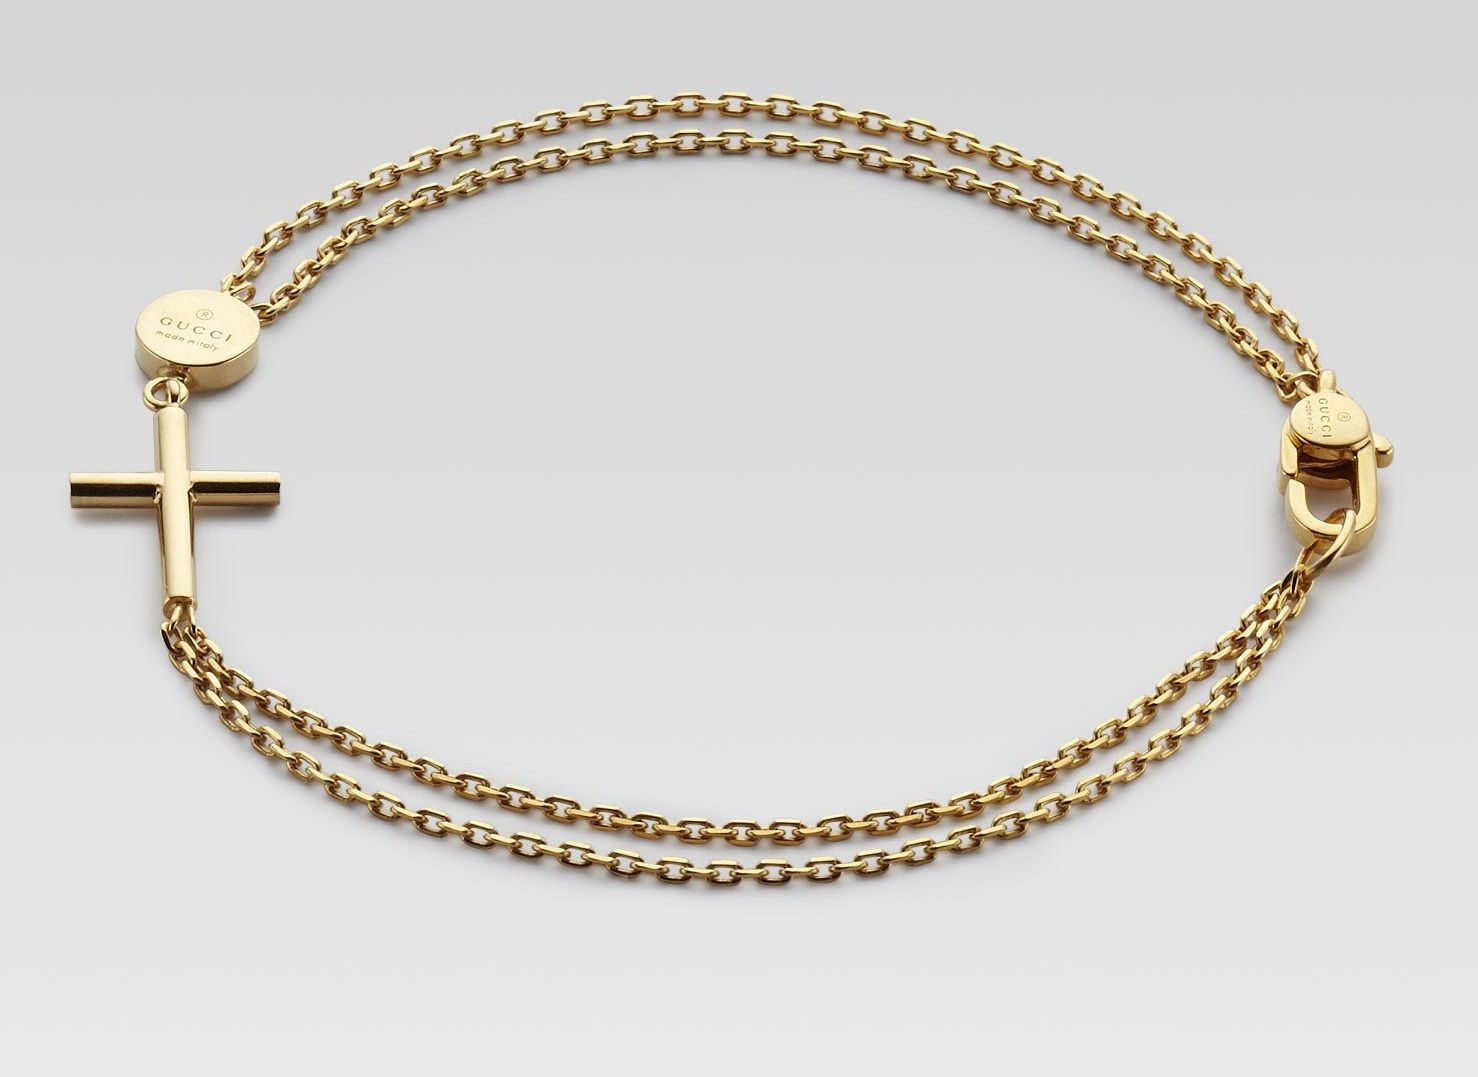 Popular Gucci Men's Gold Bracelet With Cross Pendant | My Personal Style  FZ68